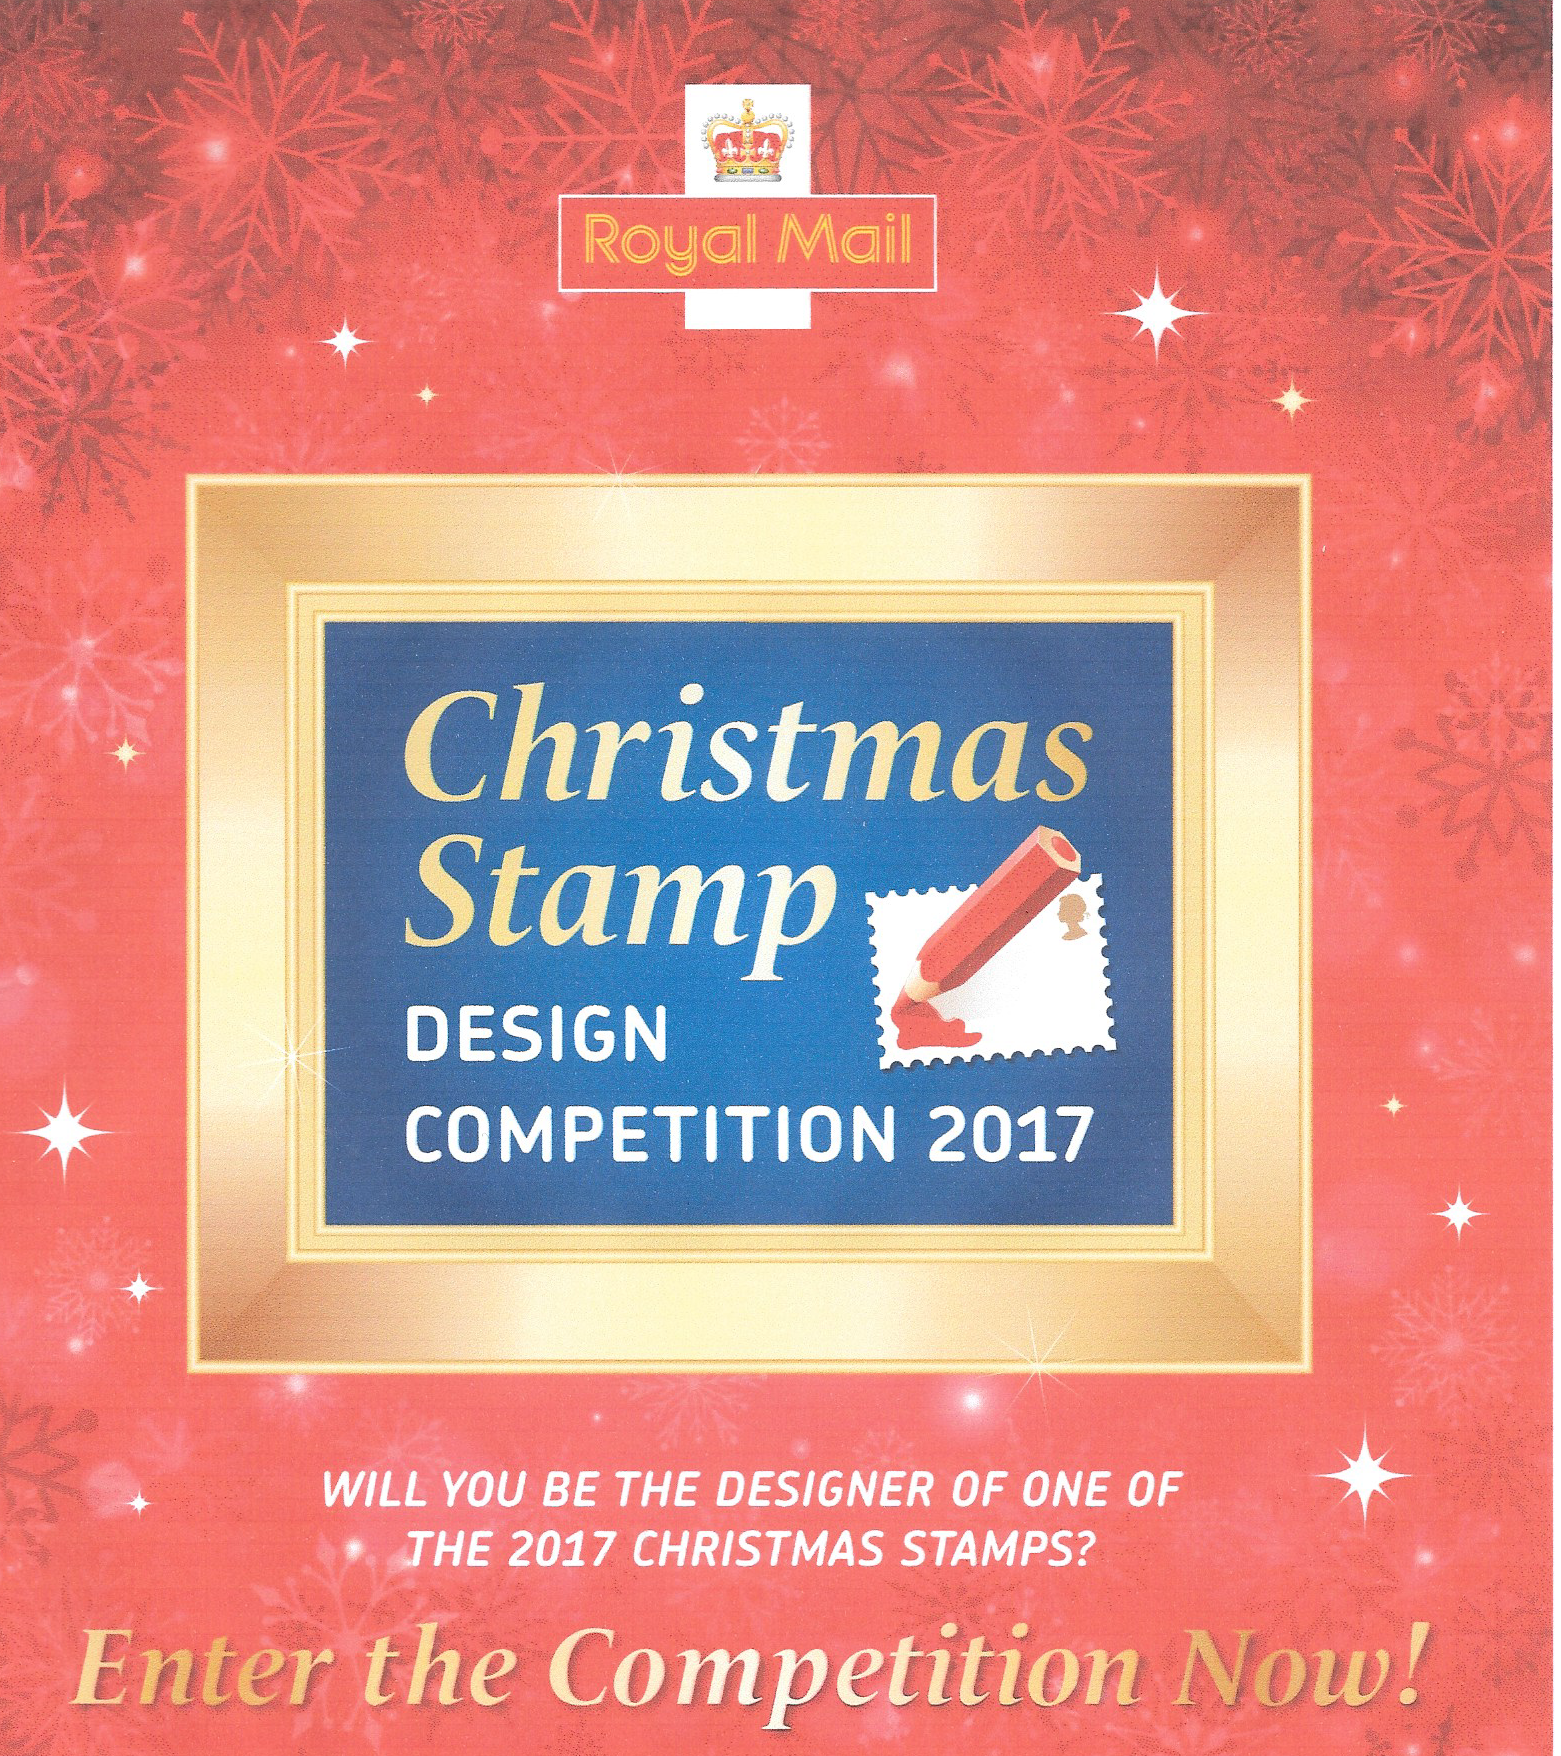 Poster design competition 2017 - Royal Mail S Christmas Stamp Design Competition 2017 Poster Image